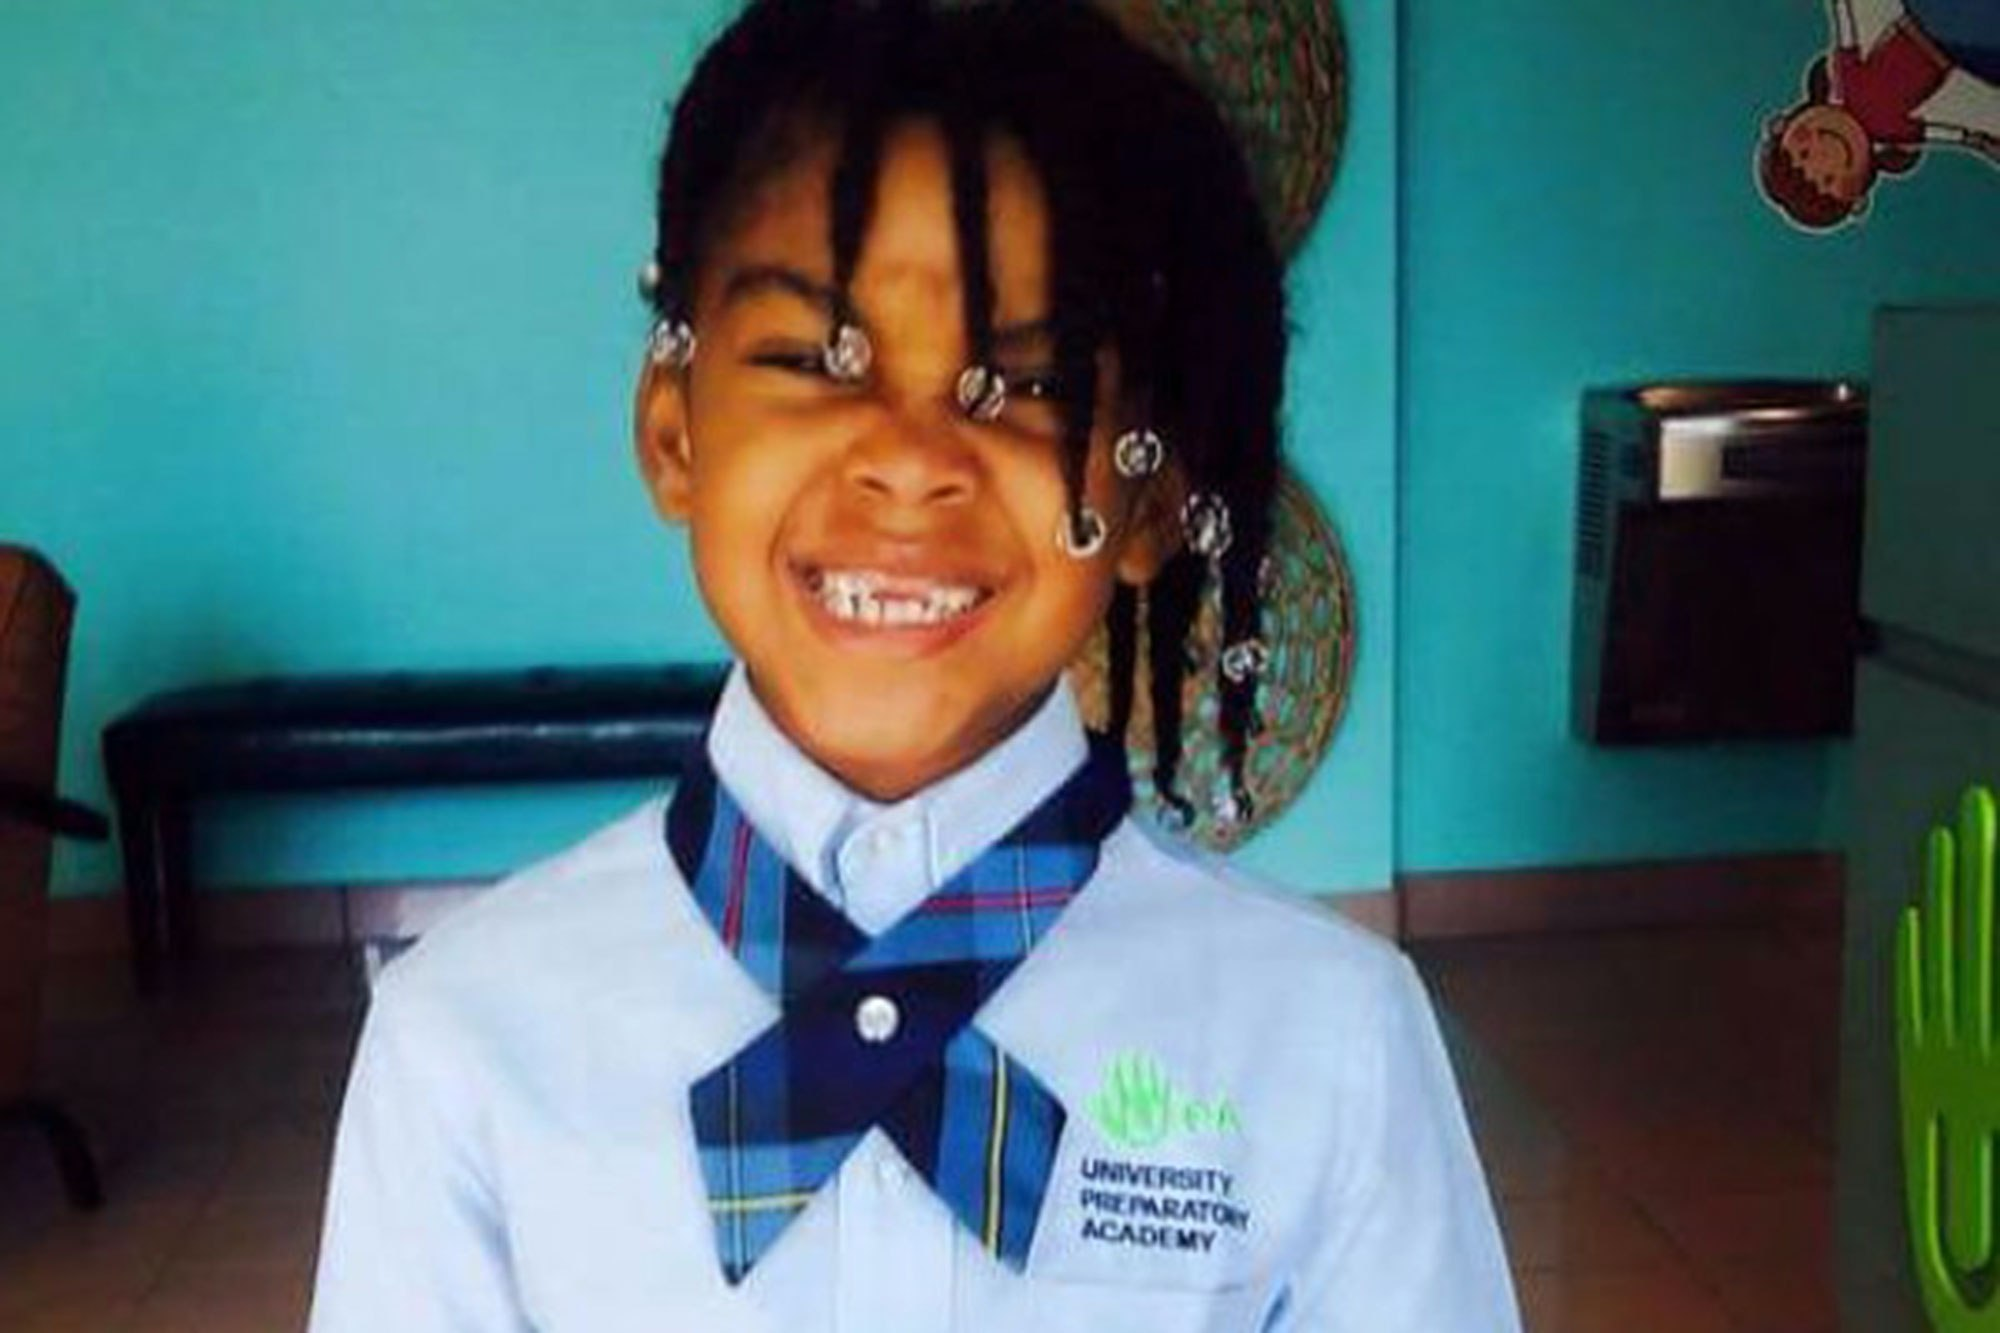 Florida Girl, 8, Dies After Being Dared to Drink Boiling Water Through Straw  https://www.gofundme.com/kiari-pope-funeral-arrangements  Credit: GoFundMe